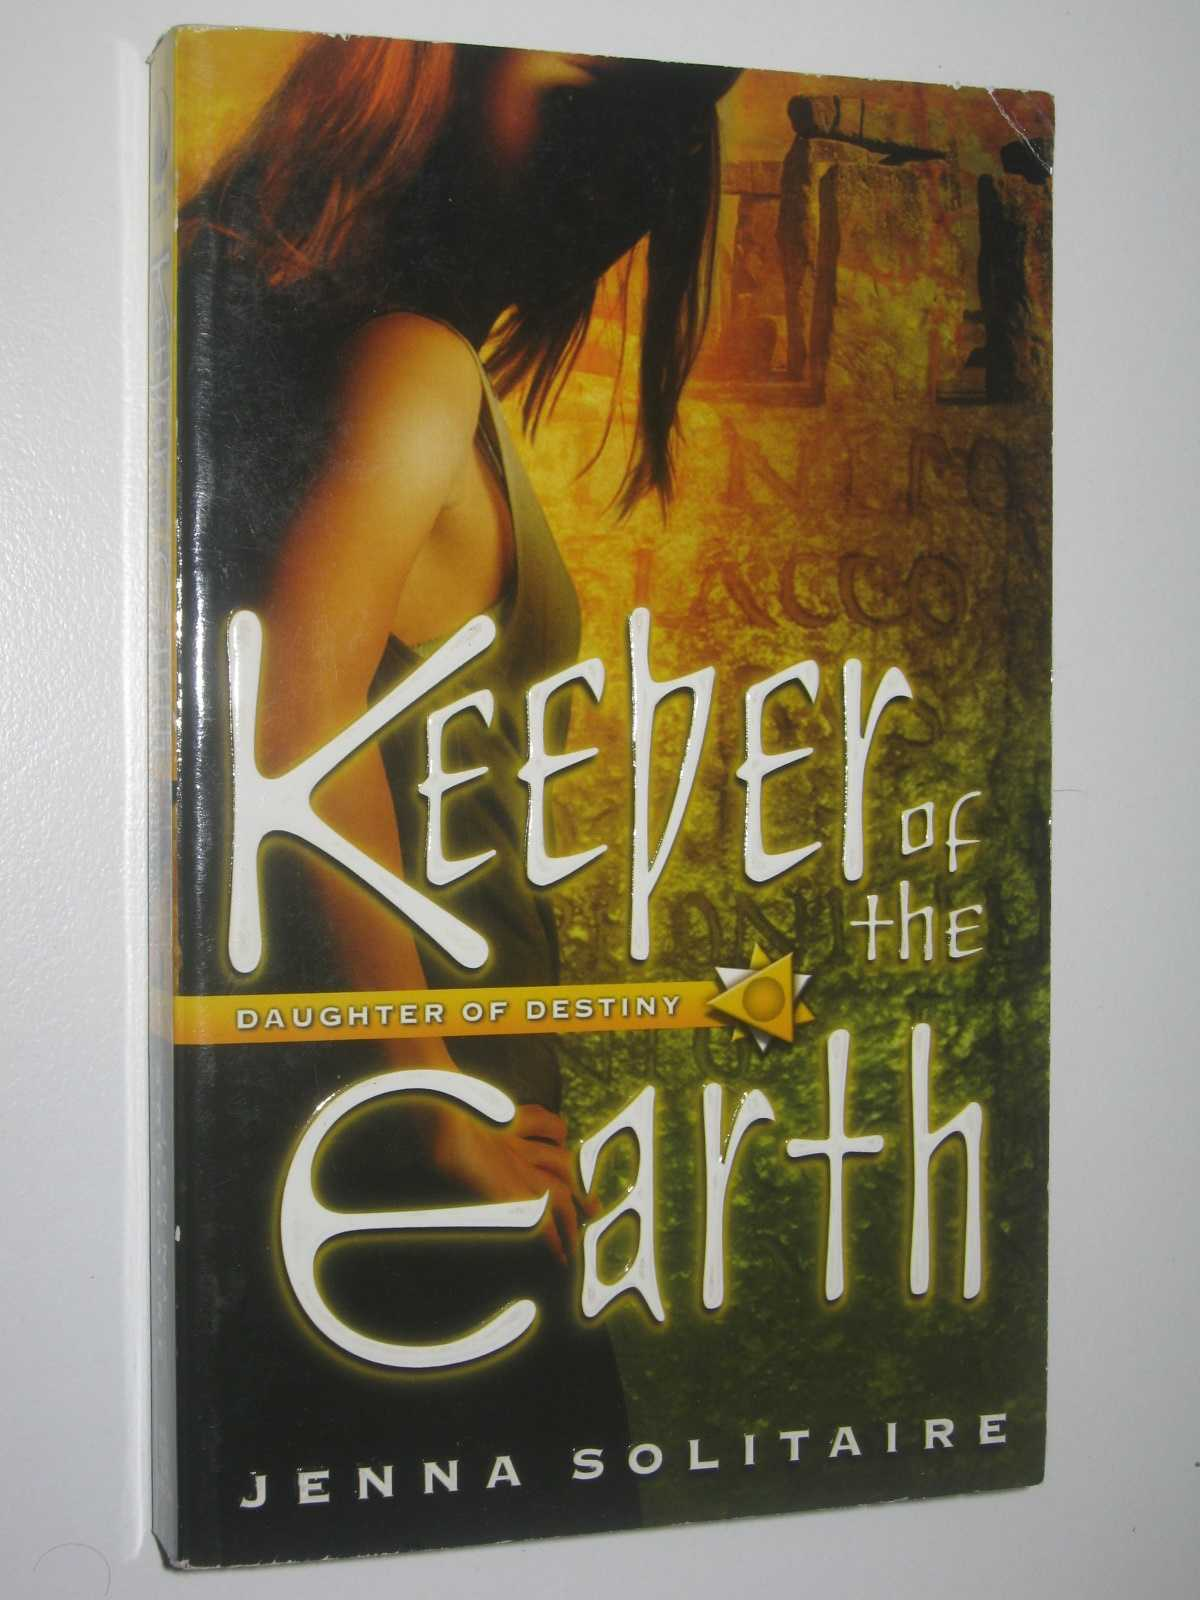 Keeper of the Earth - Daughter of Destiny #4, Solitaire, Jenna